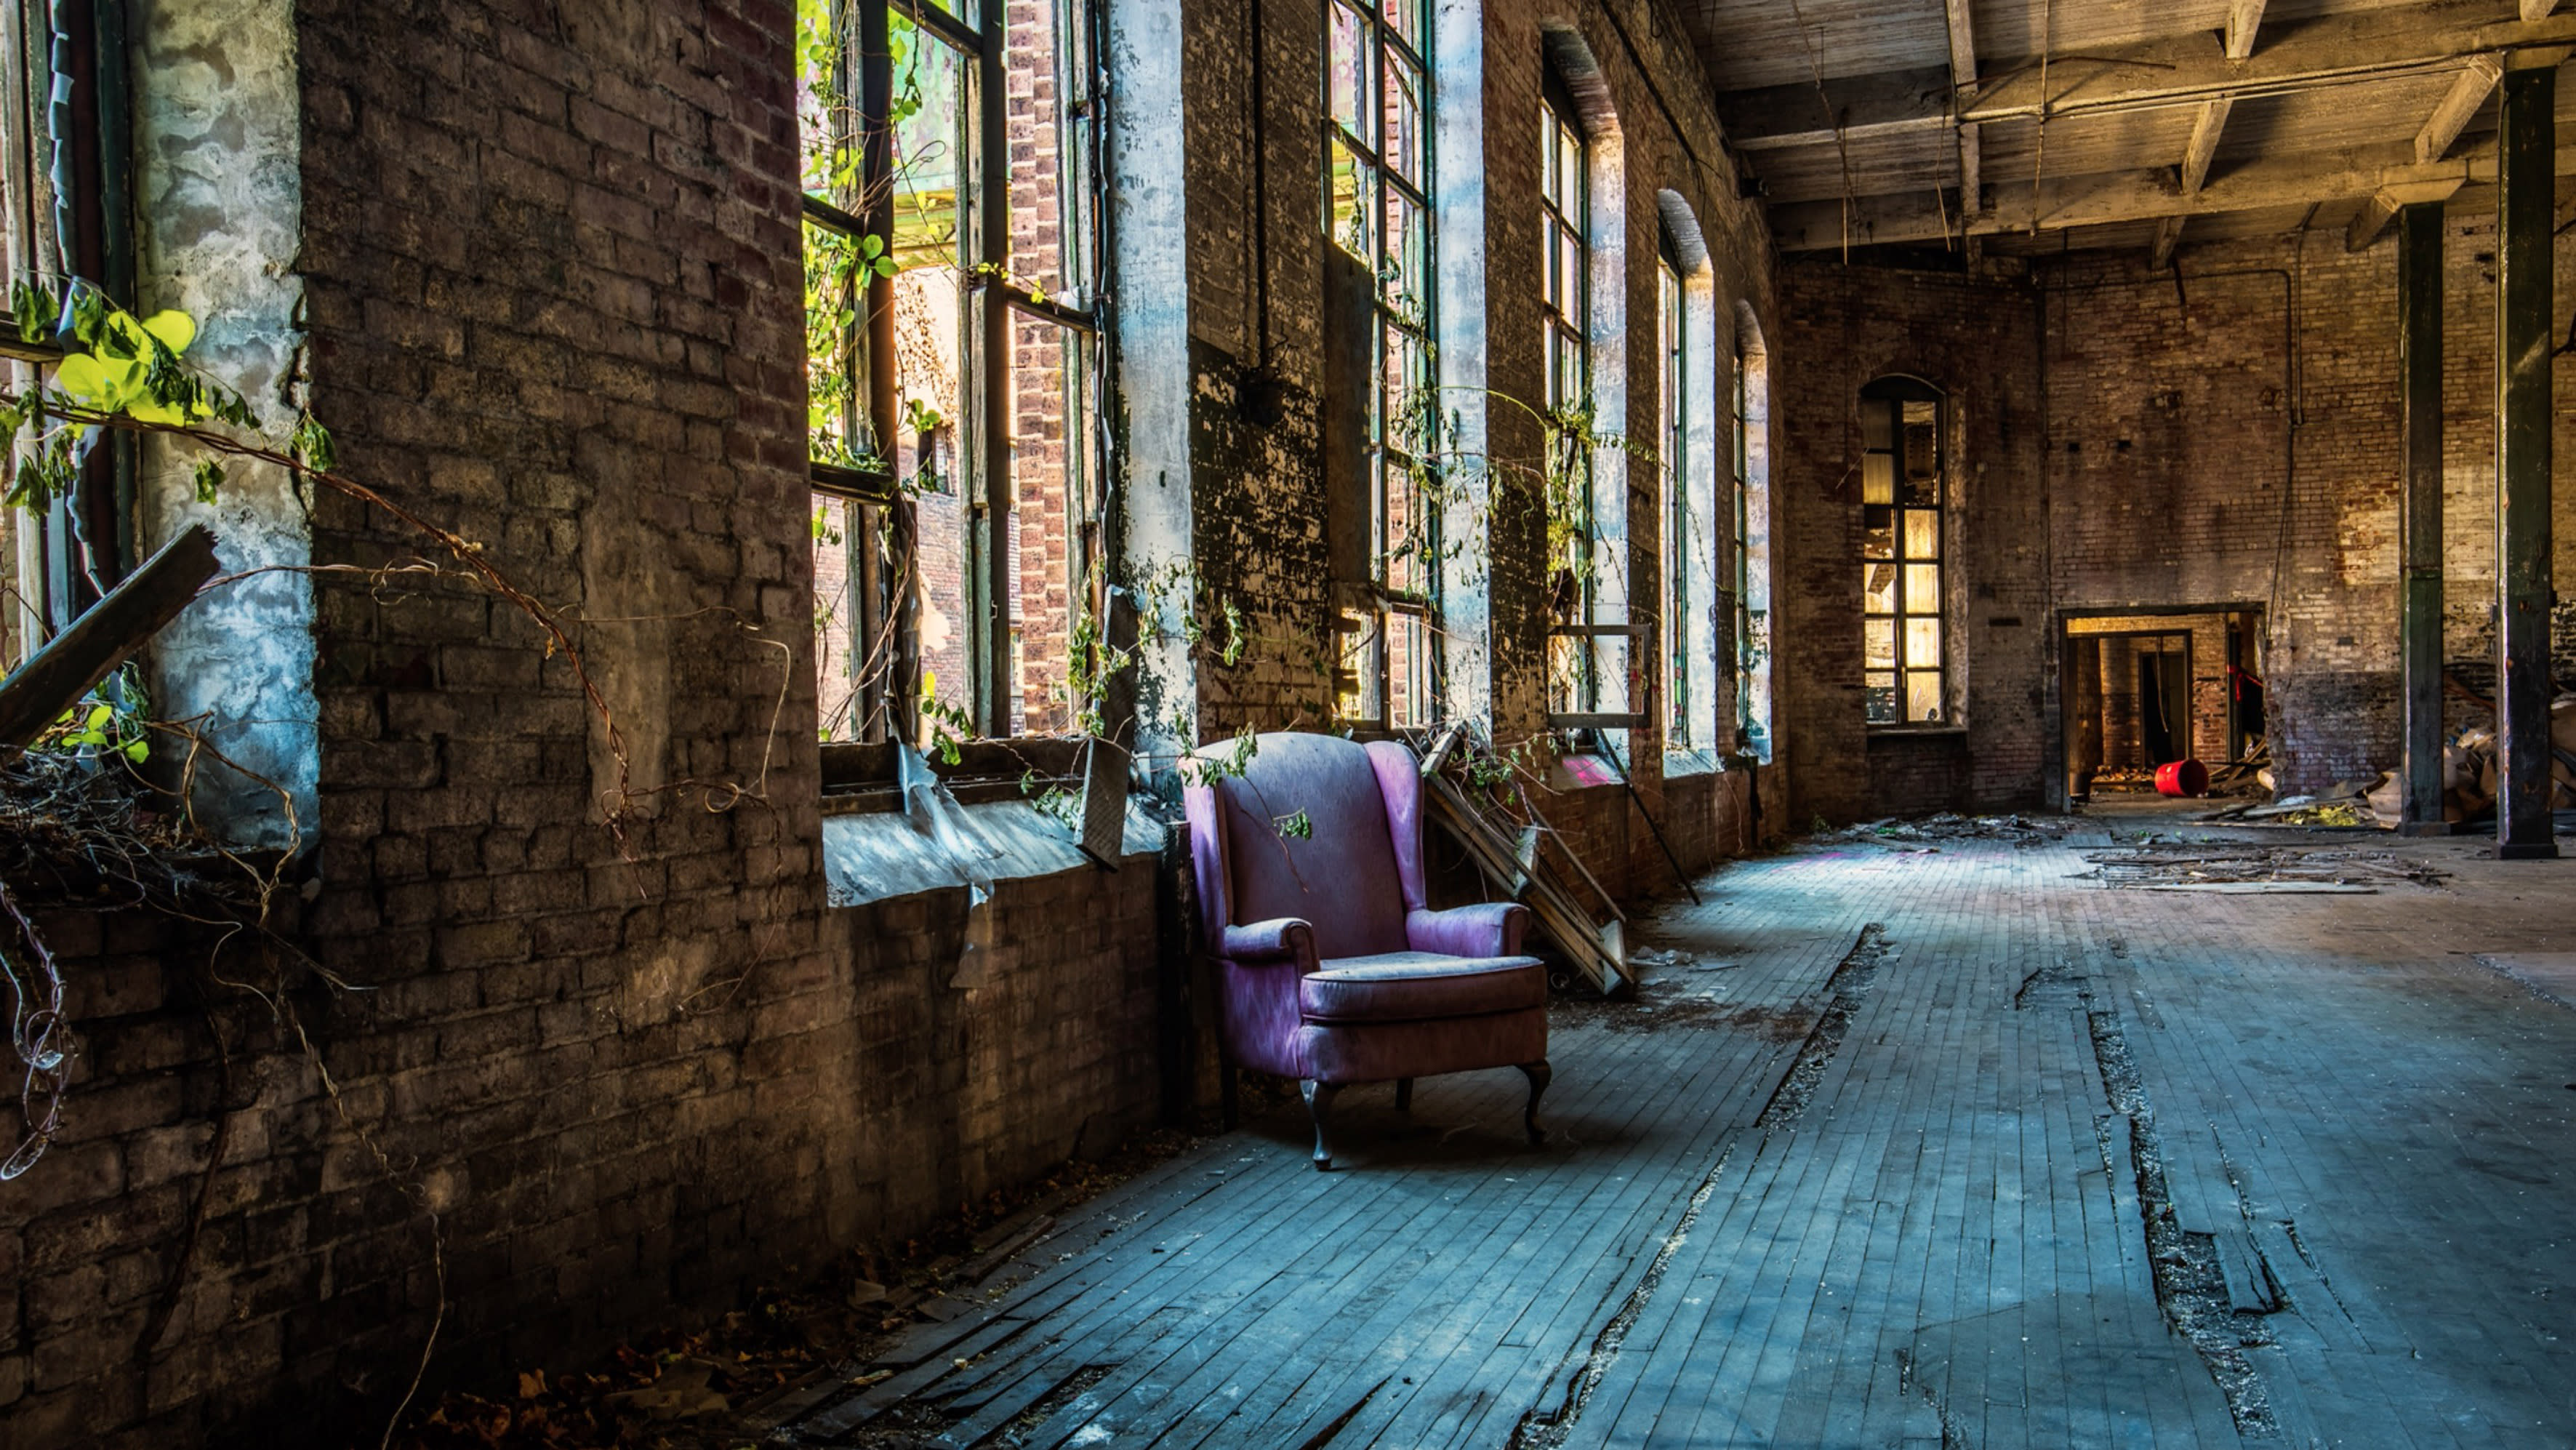 Photos: Abandoned buildings series